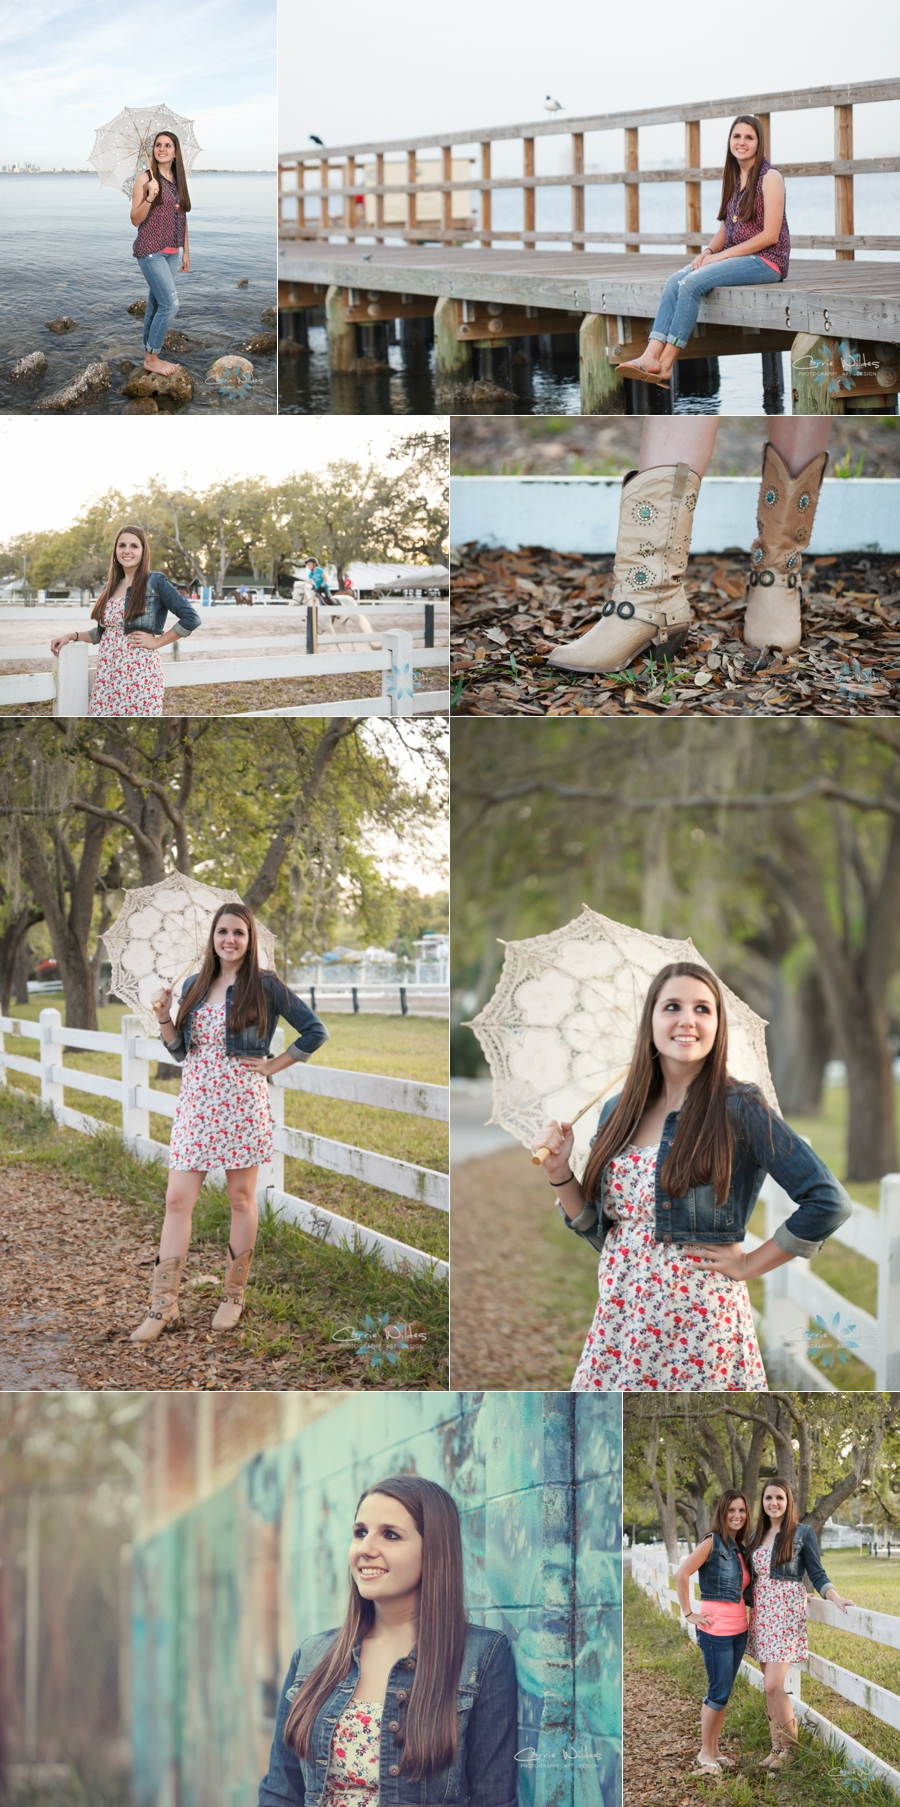 2_19_13 Tampa Senior Portrait Session_0001.jpg